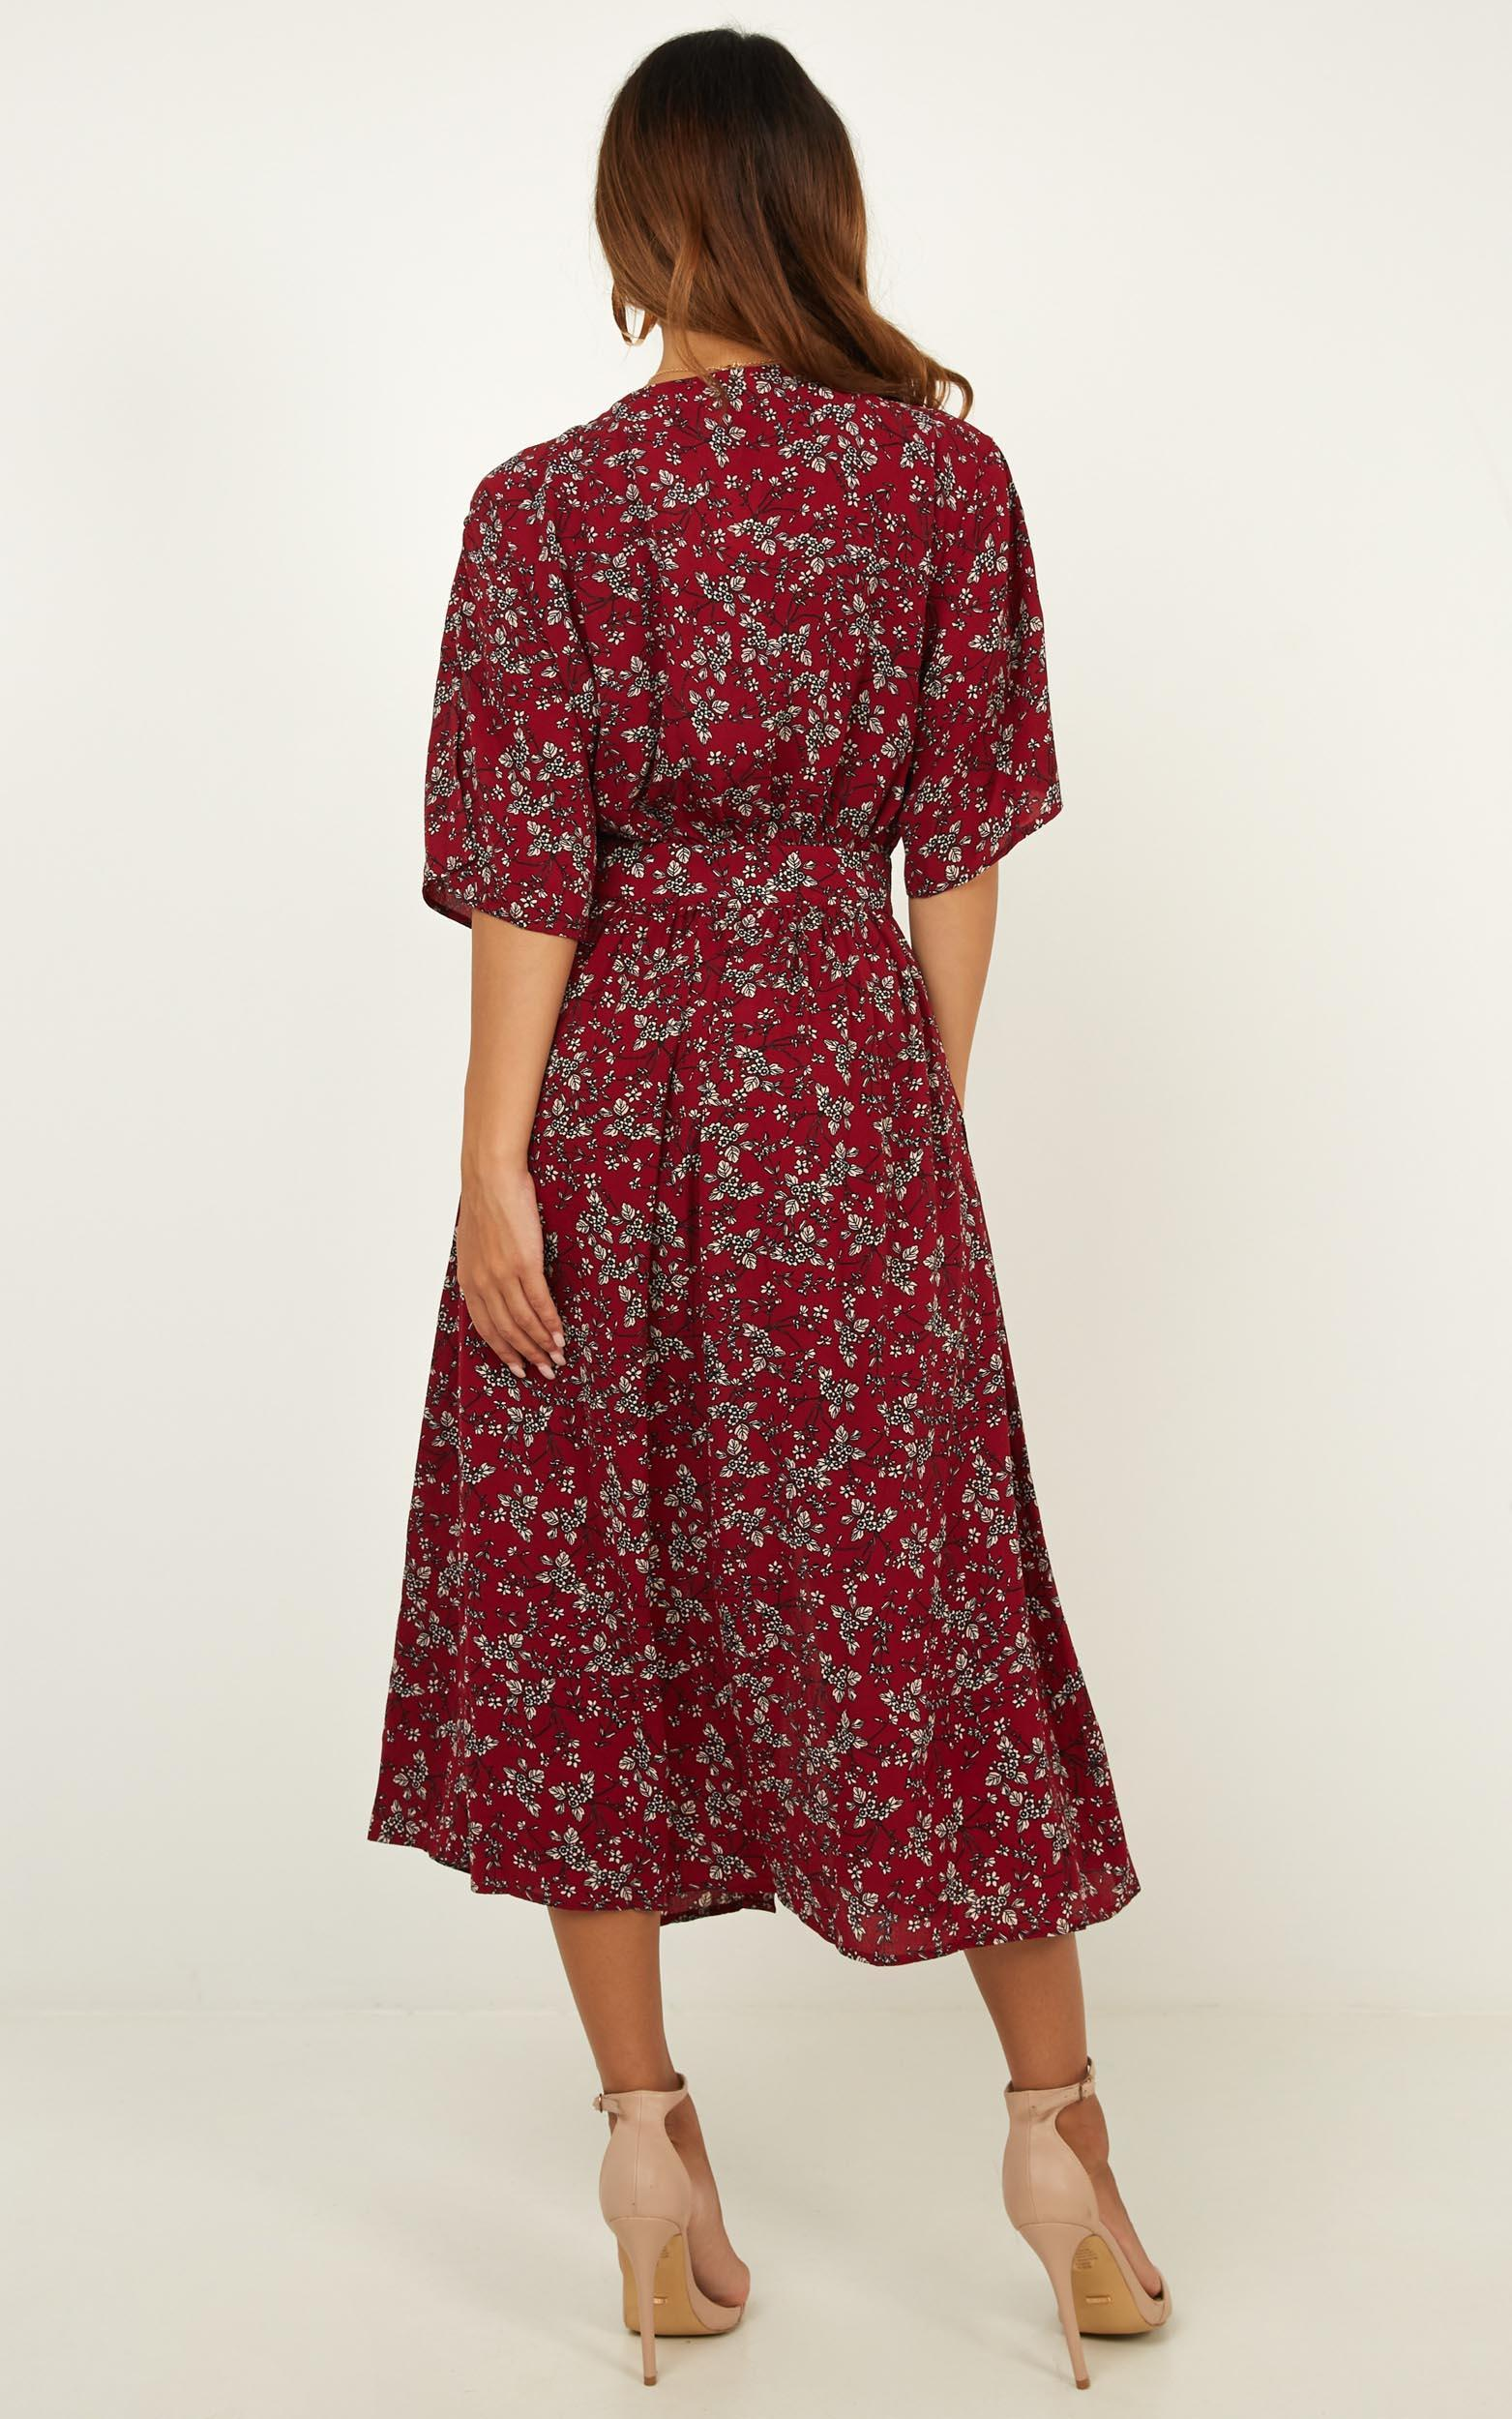 Inner Circle Only Dress in wine floral - 12 (L), Wine, hi-res image number null